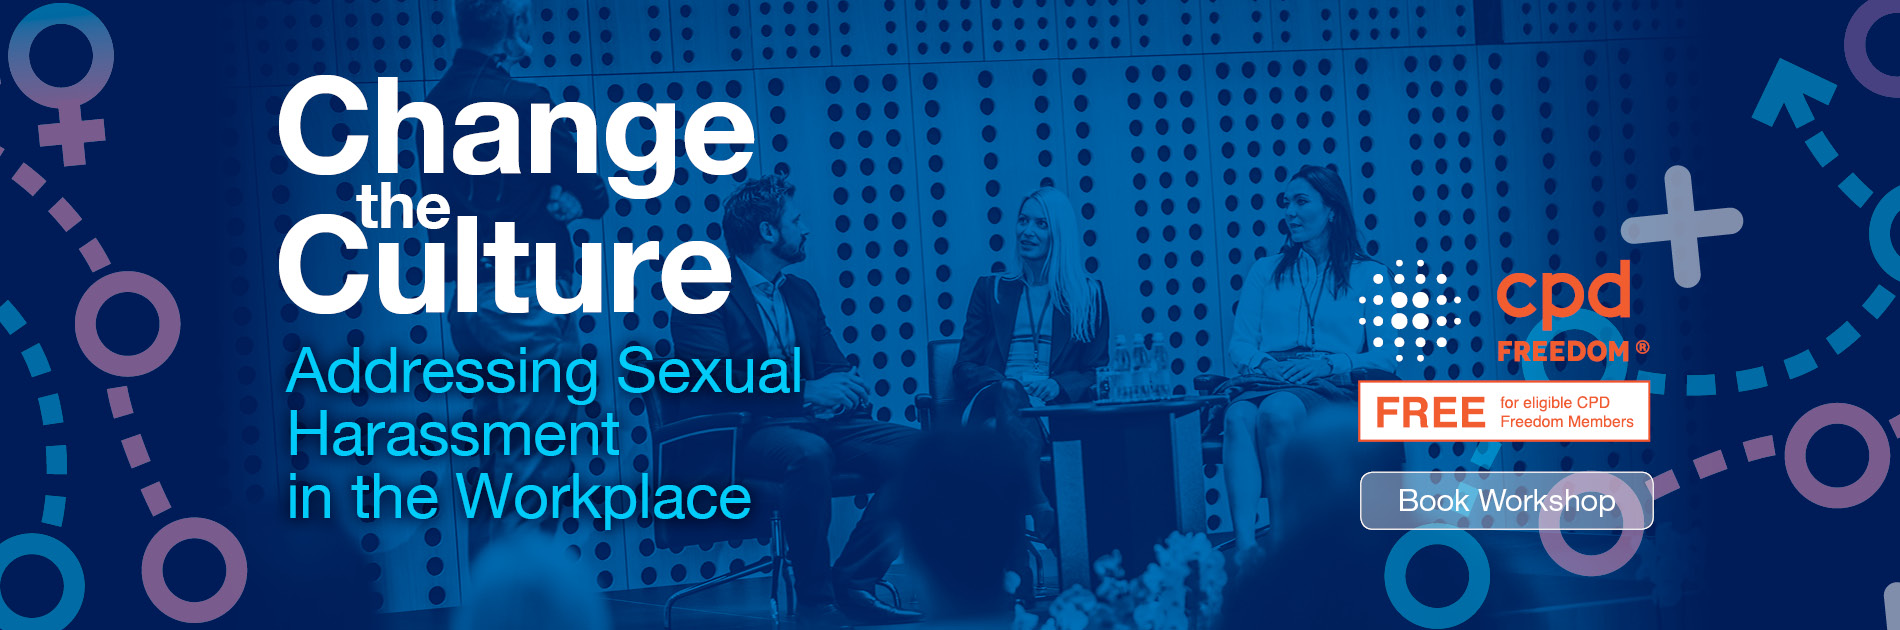 Change the Culture - Addressing Sexual Harassment in the Workplace